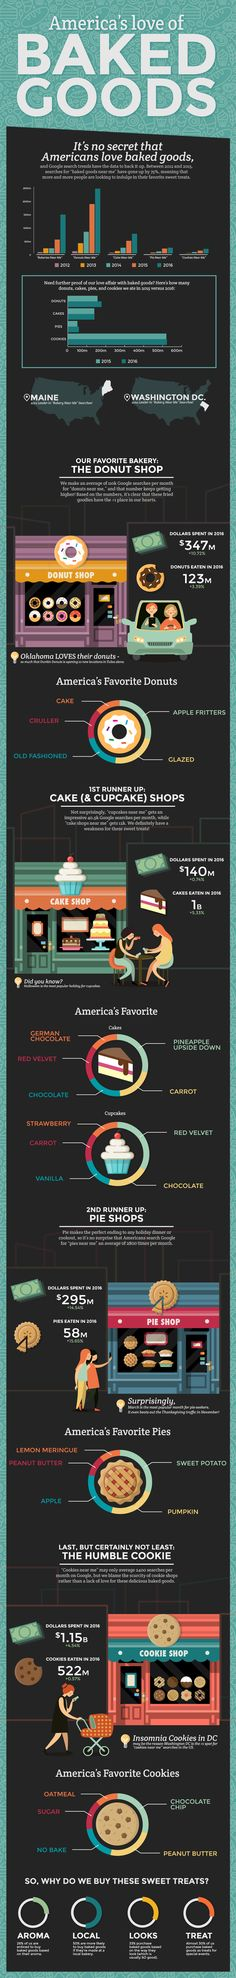 America's love of baked goods.  #infographic #food #bakery